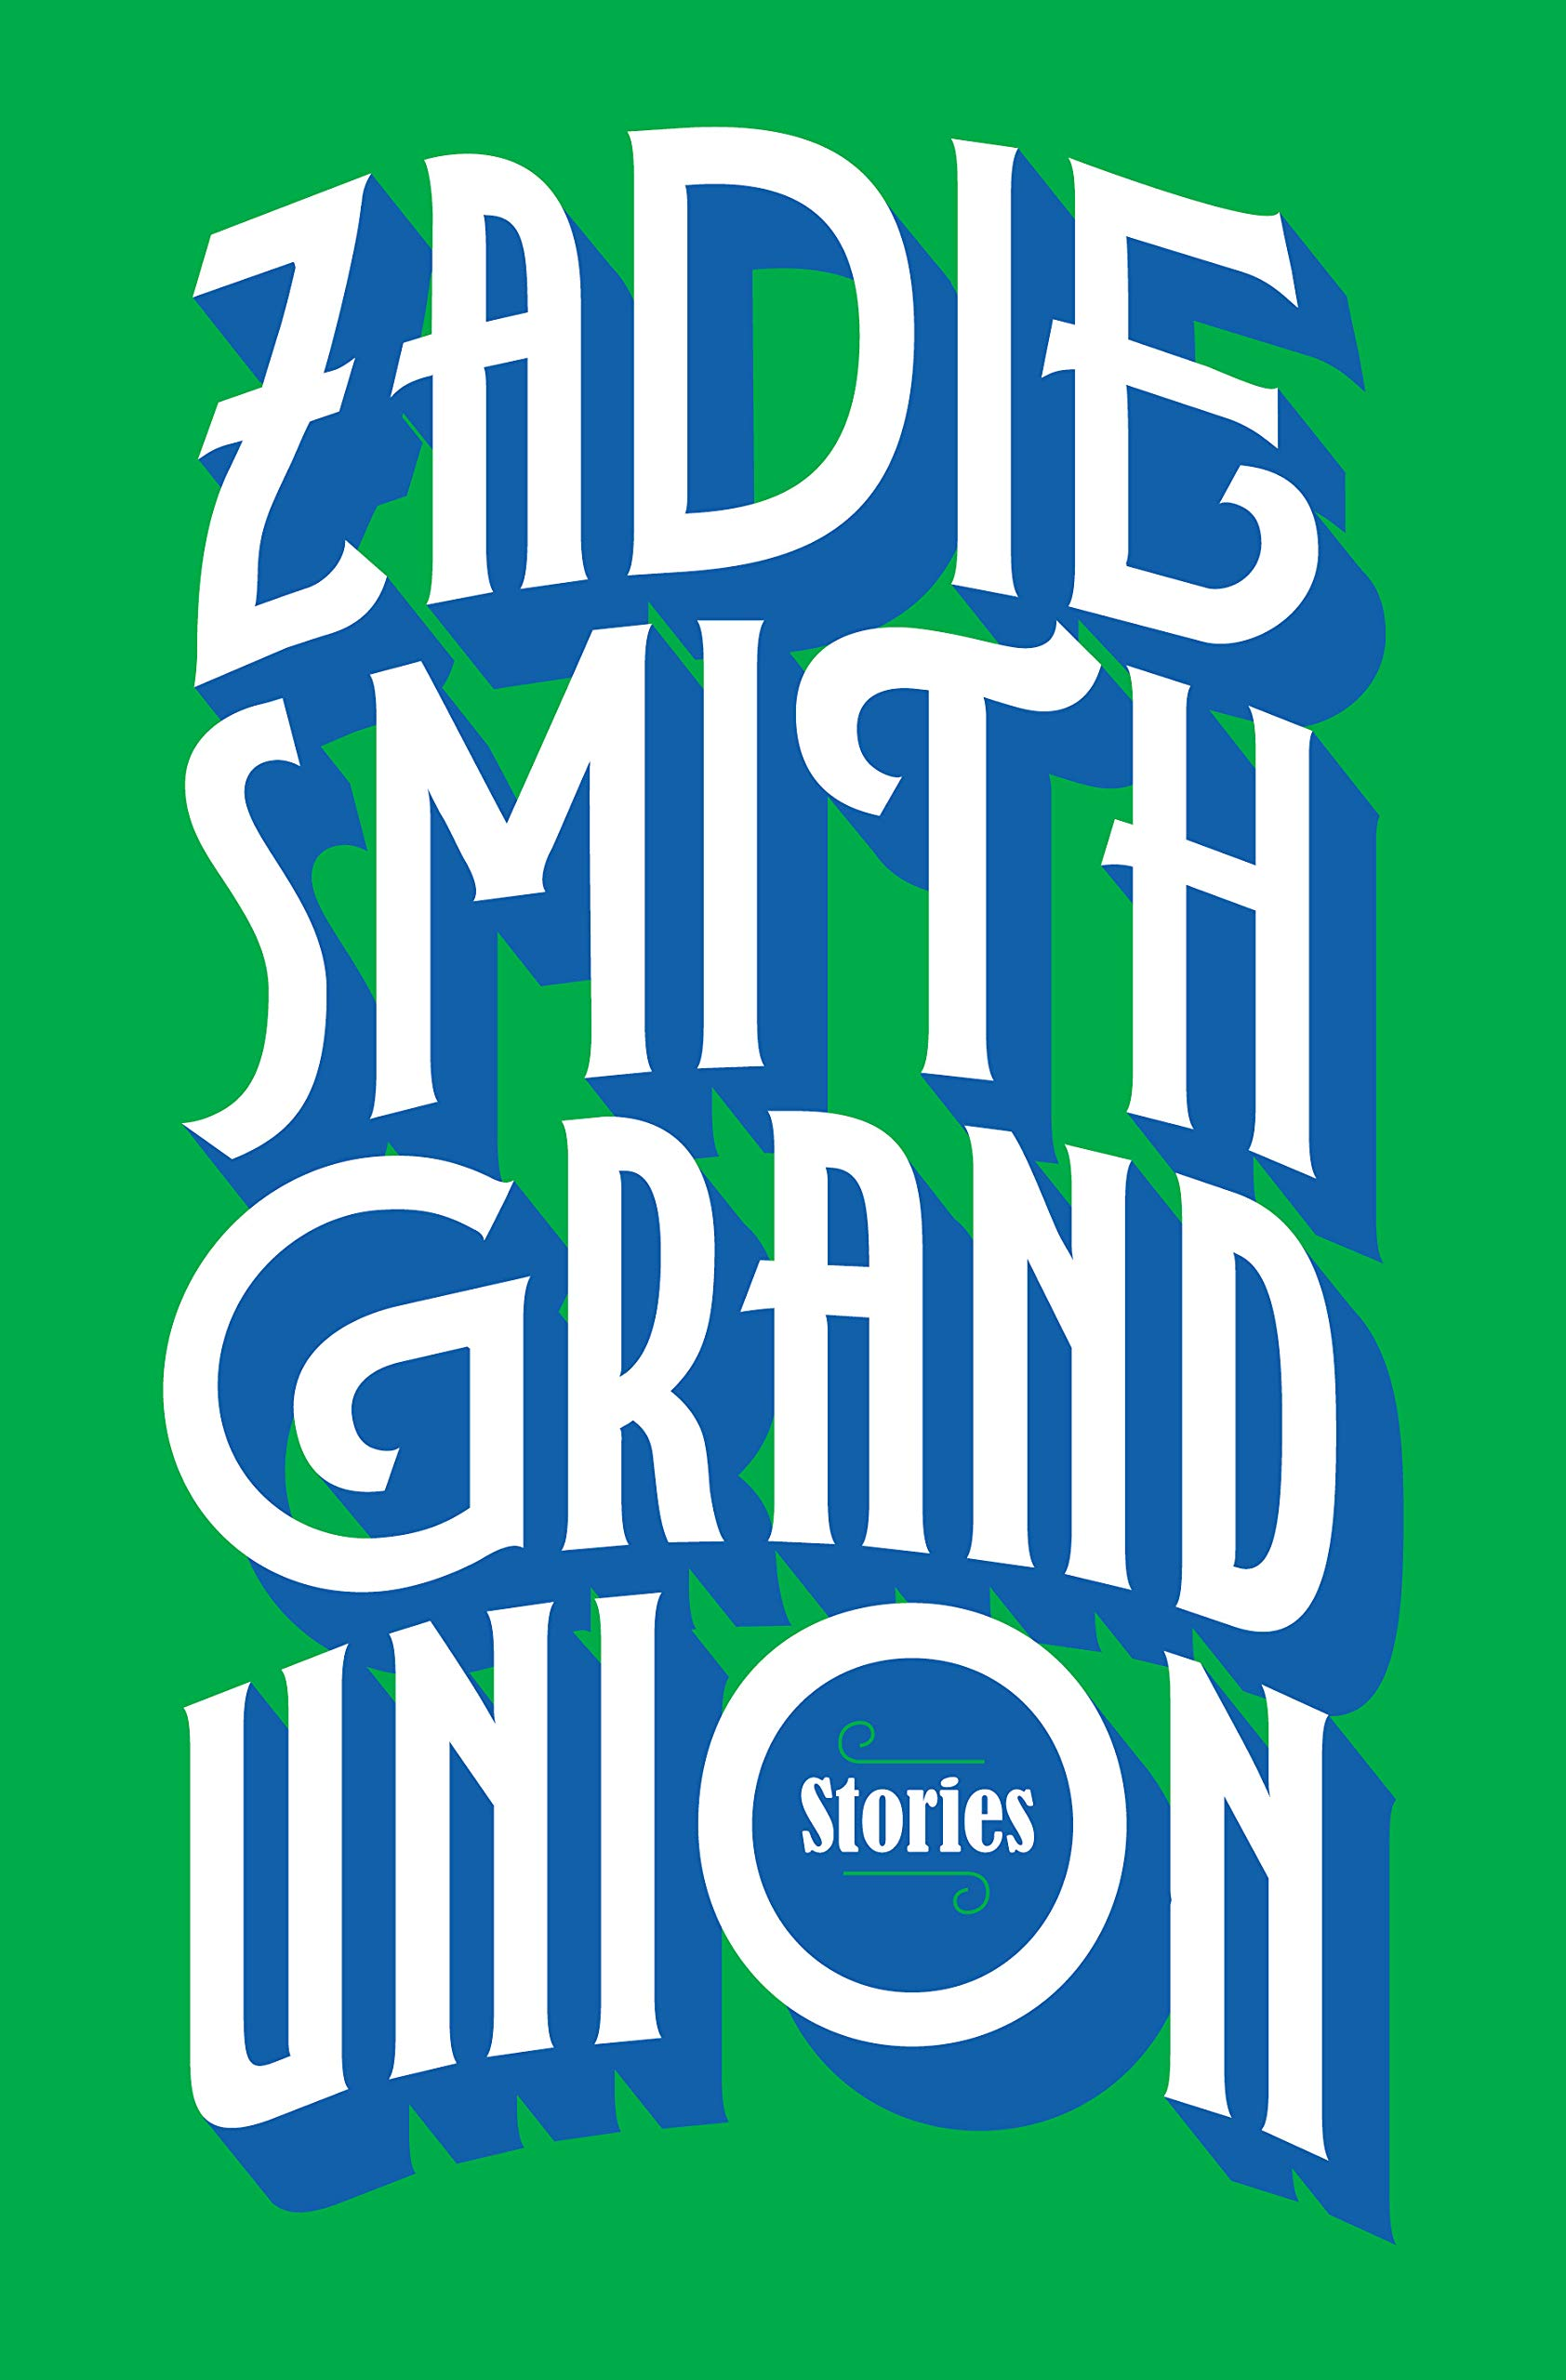 Grand Union: Stories by Penguin Press